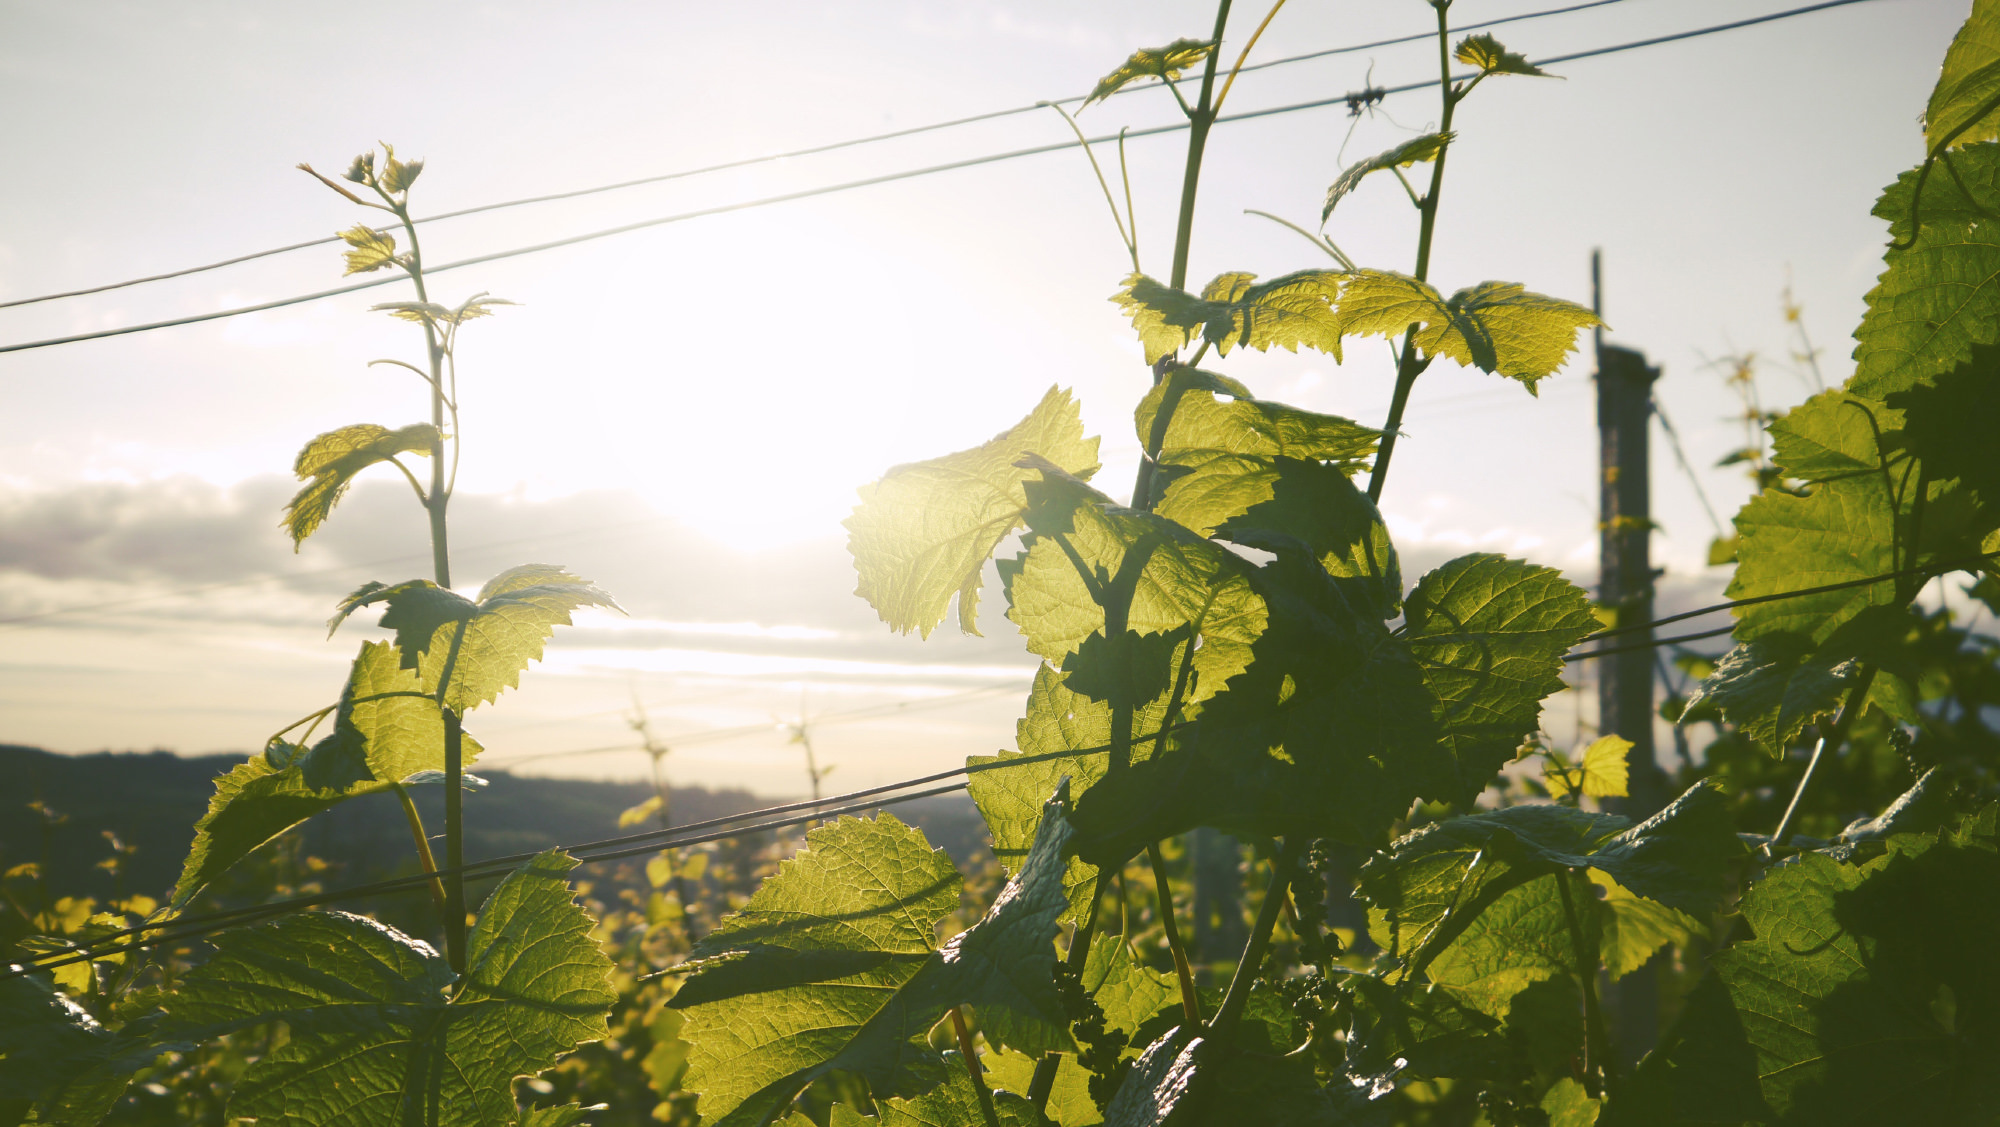 Plants reaching towards a clear and sunny sky, symbolizing growth and mental clarity.